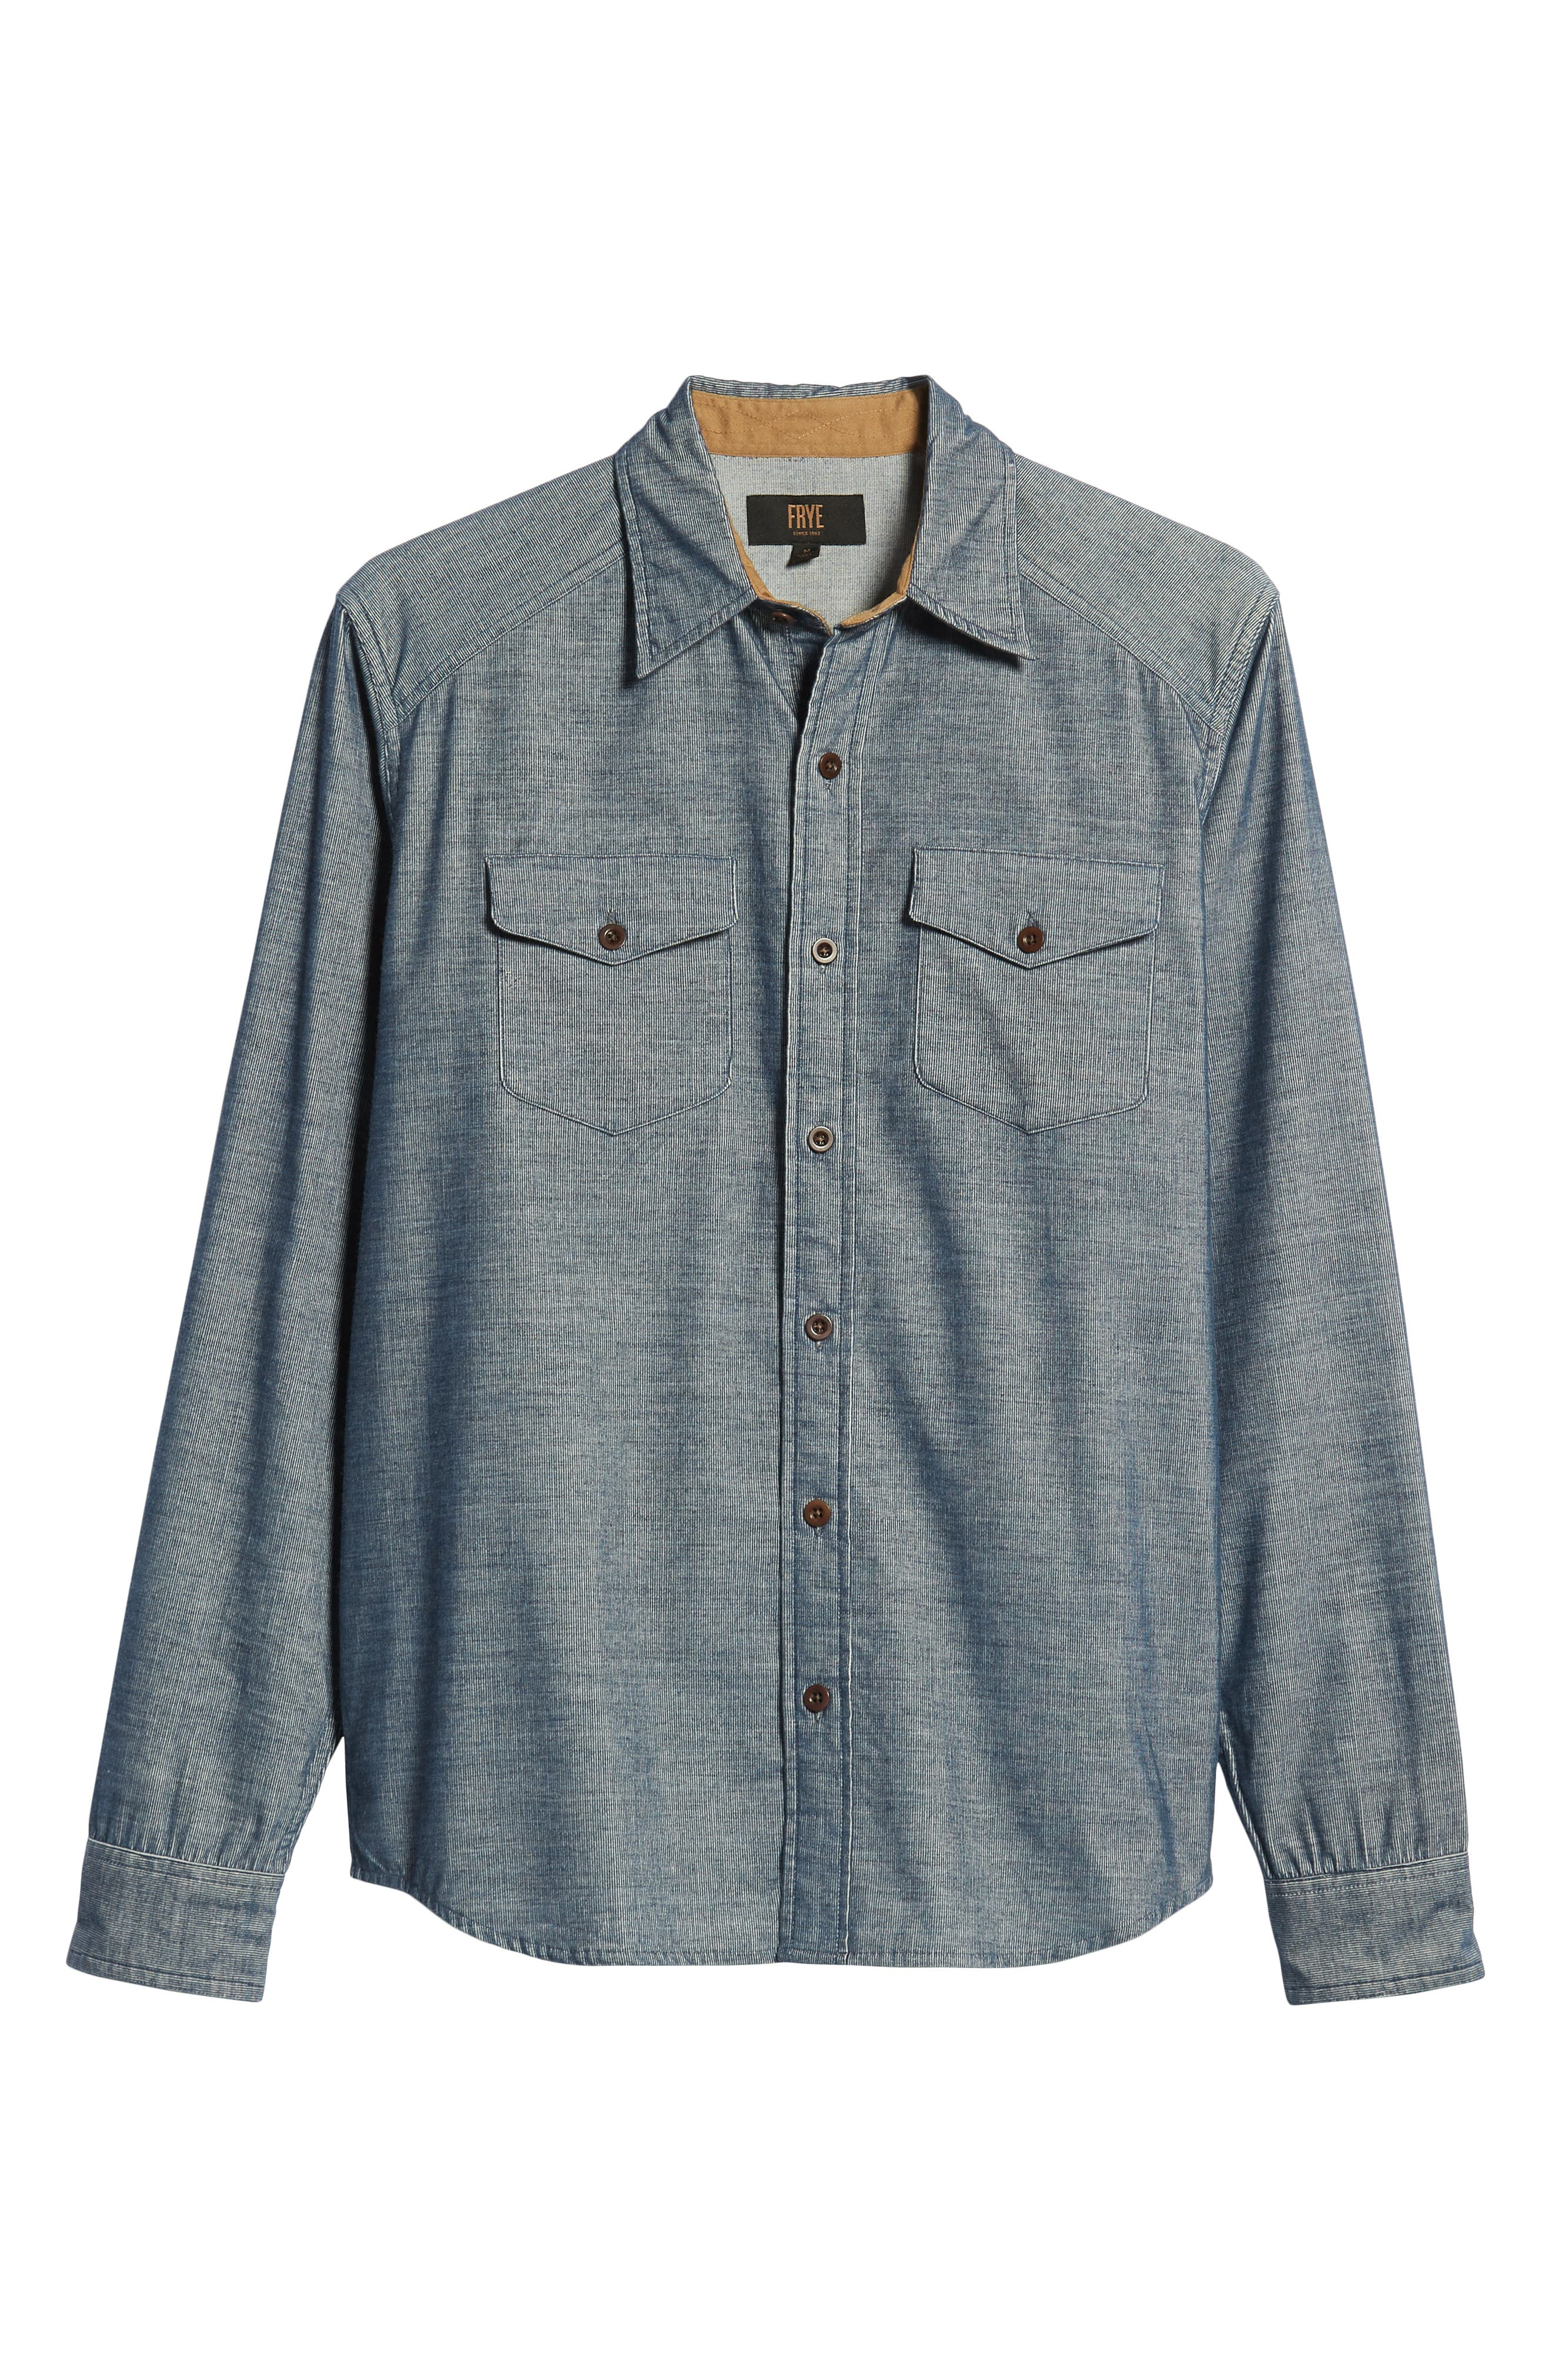 John Addison Engineer Shirt,                             Alternate thumbnail 5, color,                             BLUE HEATHER